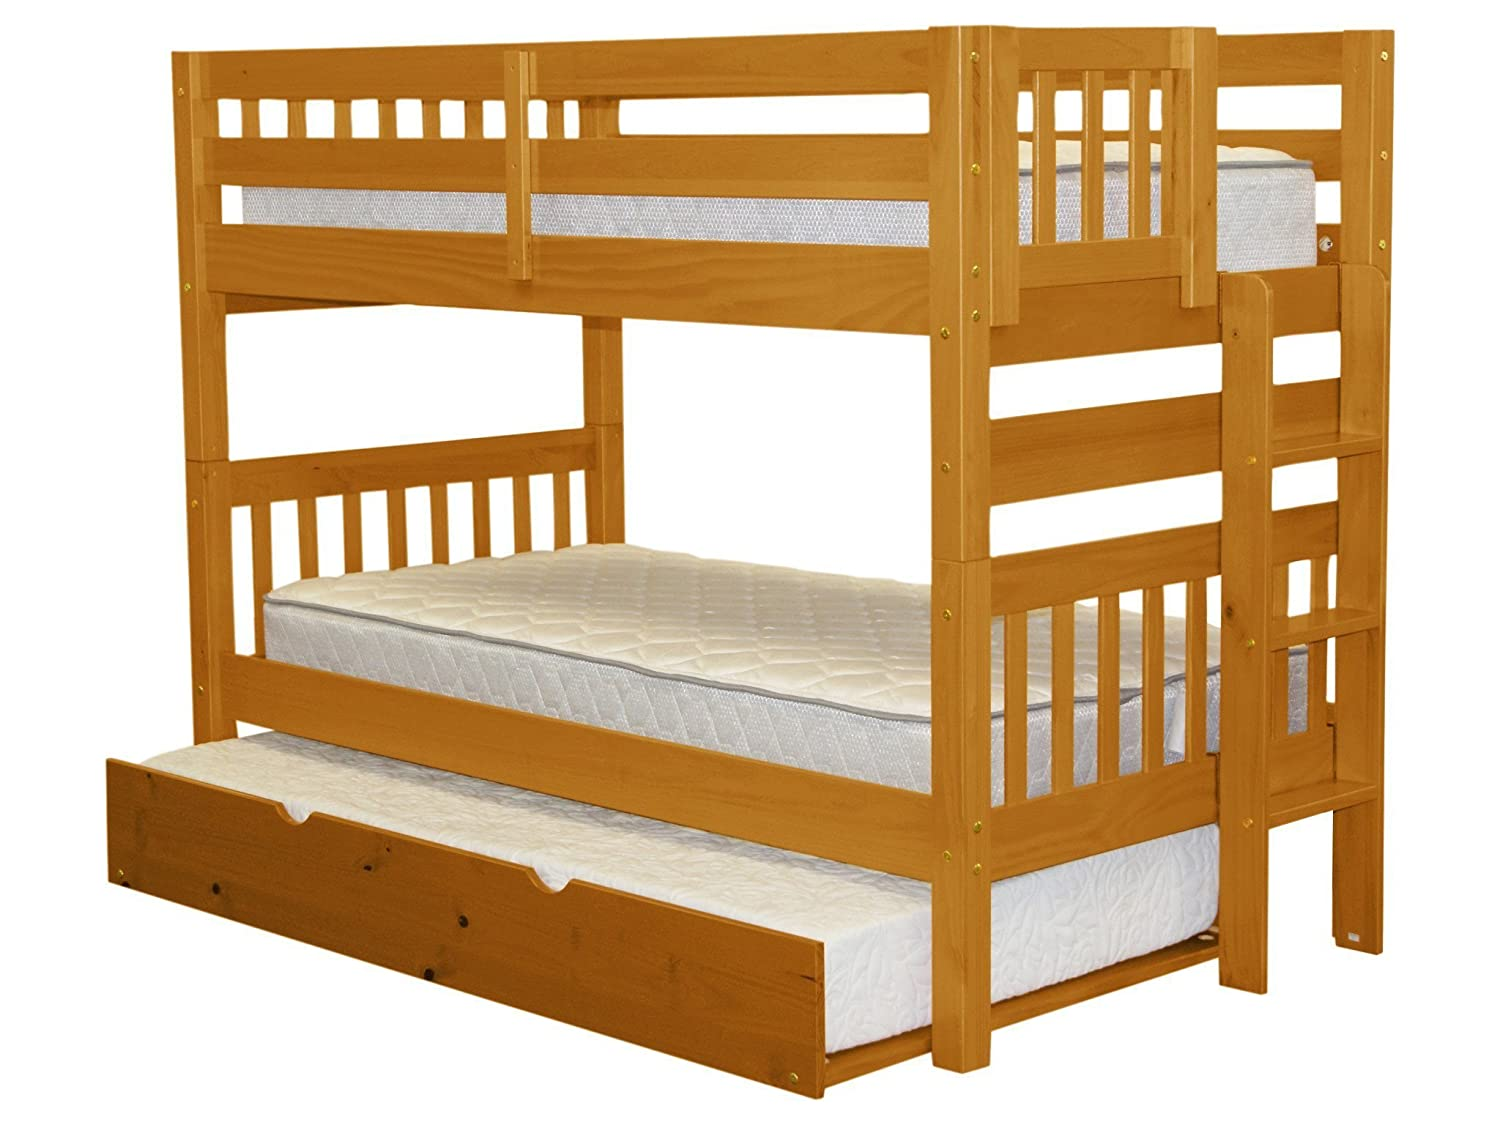 Bedz King Bunk Beds Twin over Twin Mission Style with End Ladder and a Twin Trundle, Honey